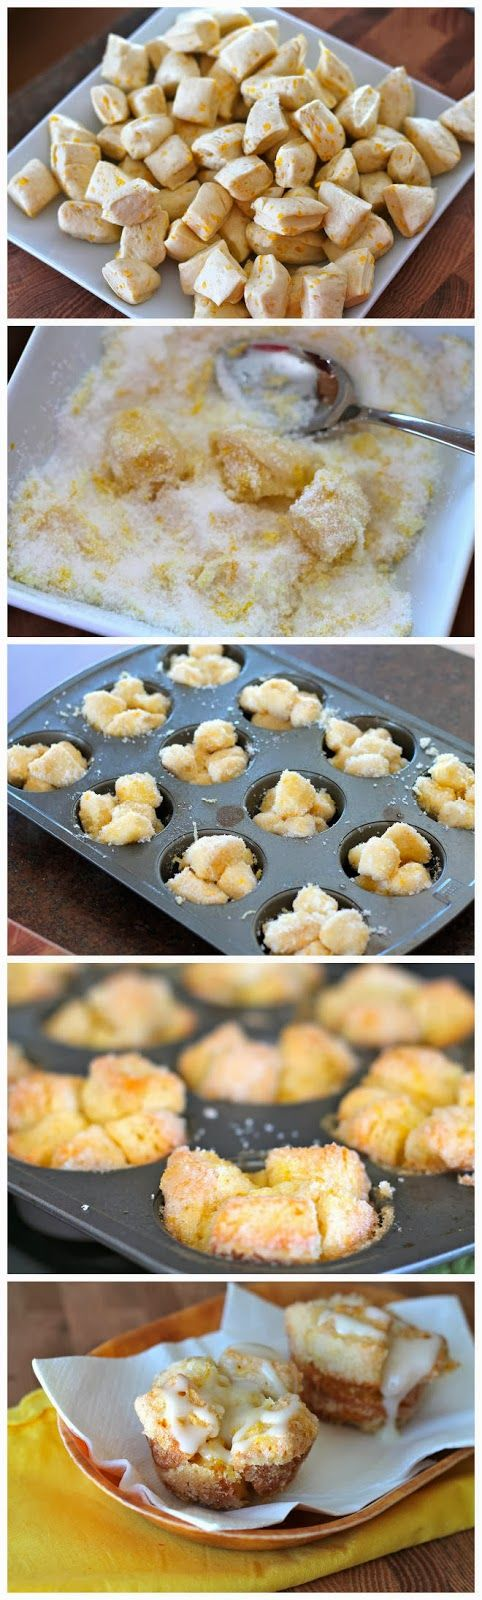 Lemon Monkey Bread Cupcakes - these are in the oven and smell delicious!